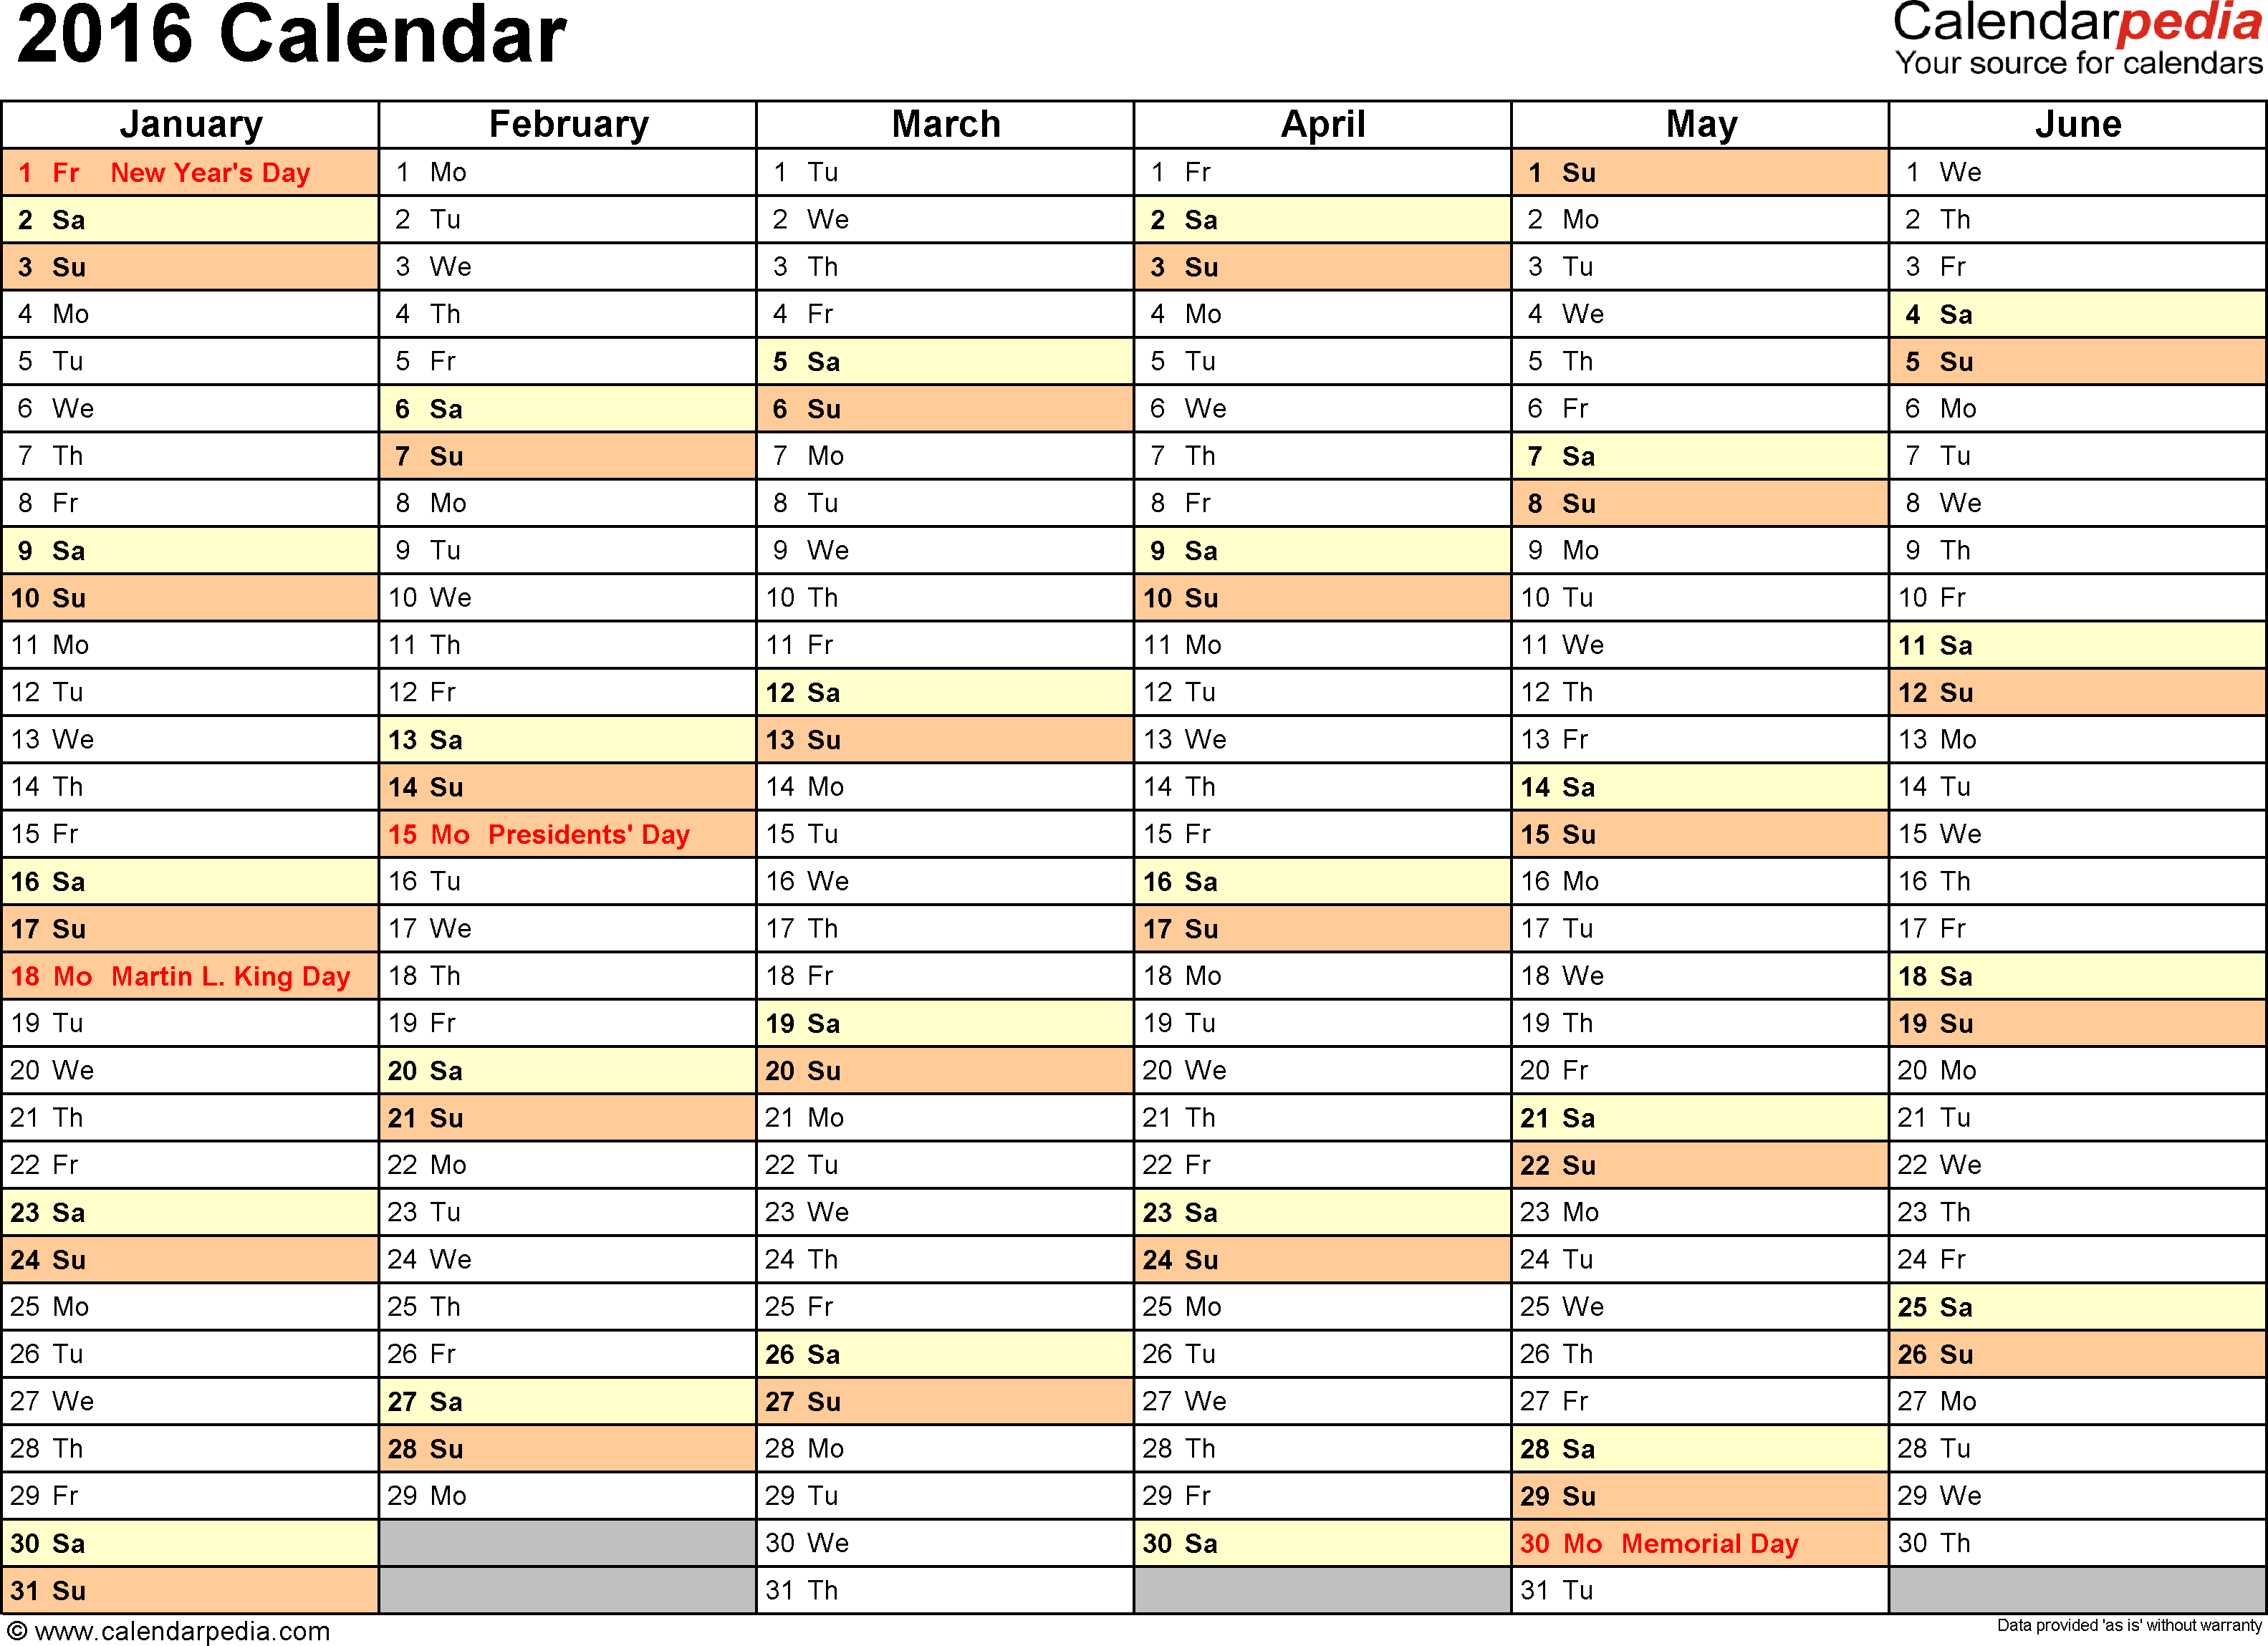 Ediblewildsus  Pleasing  Calendar  Download  Free Printable Excel Templates Xls With Glamorous Template   Calendar For Excel Months Horizontally  Pages Landscape Orientation With Comely The Basics Of Excel Also Comparison Excel Template In Addition Excel Indirect Vlookup And Excel Filter Sum As Well As Multiply In Excel Formula Additionally Excel Difference Between Two Dates In Months From Calendarpediacom With Ediblewildsus  Glamorous  Calendar  Download  Free Printable Excel Templates Xls With Comely Template   Calendar For Excel Months Horizontally  Pages Landscape Orientation And Pleasing The Basics Of Excel Also Comparison Excel Template In Addition Excel Indirect Vlookup From Calendarpediacom